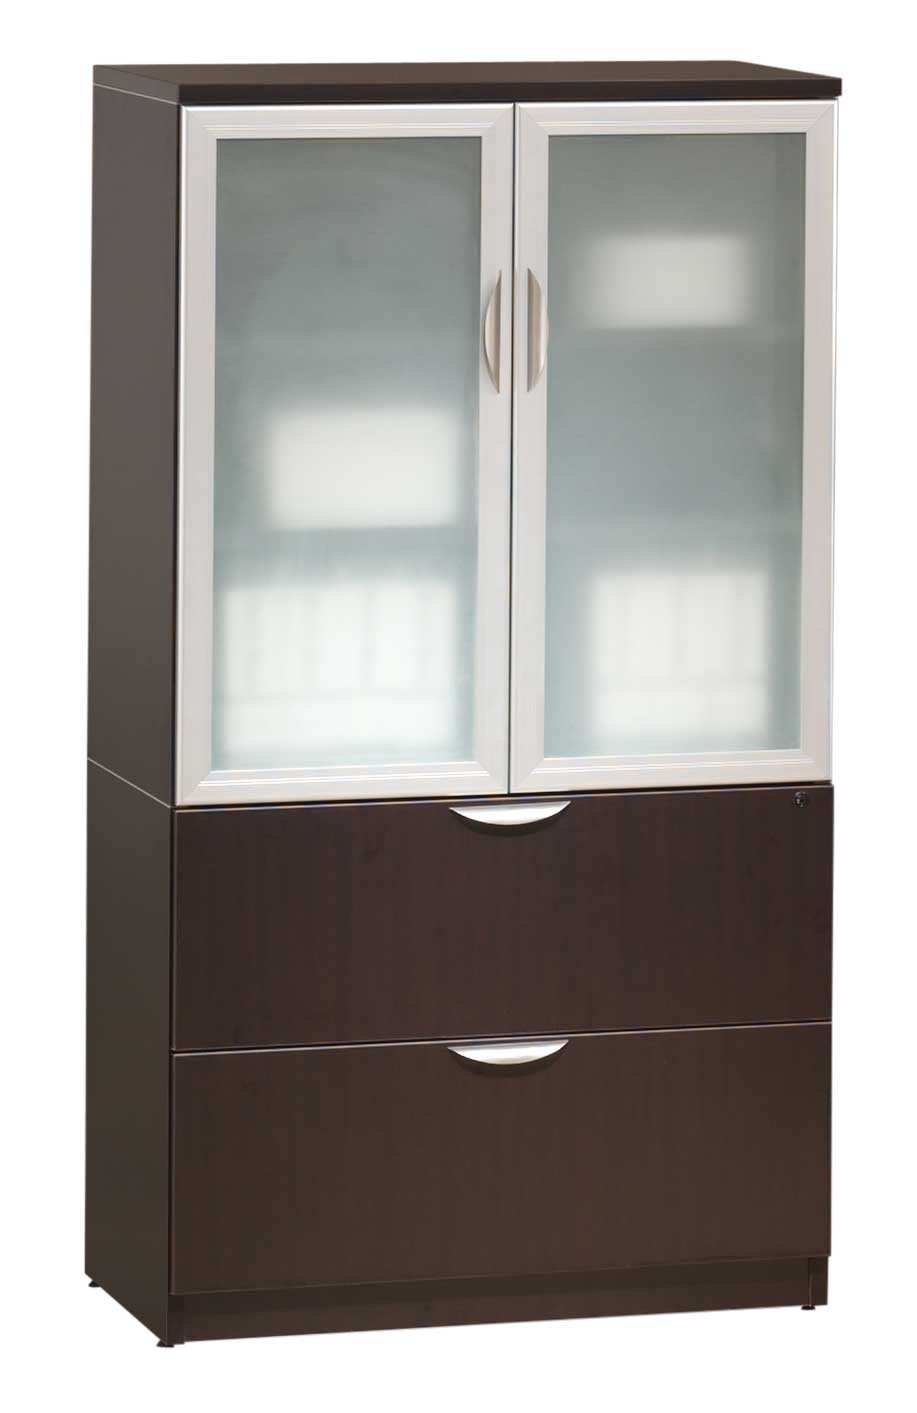 Wooden Storage Cabinet With Glass Doors